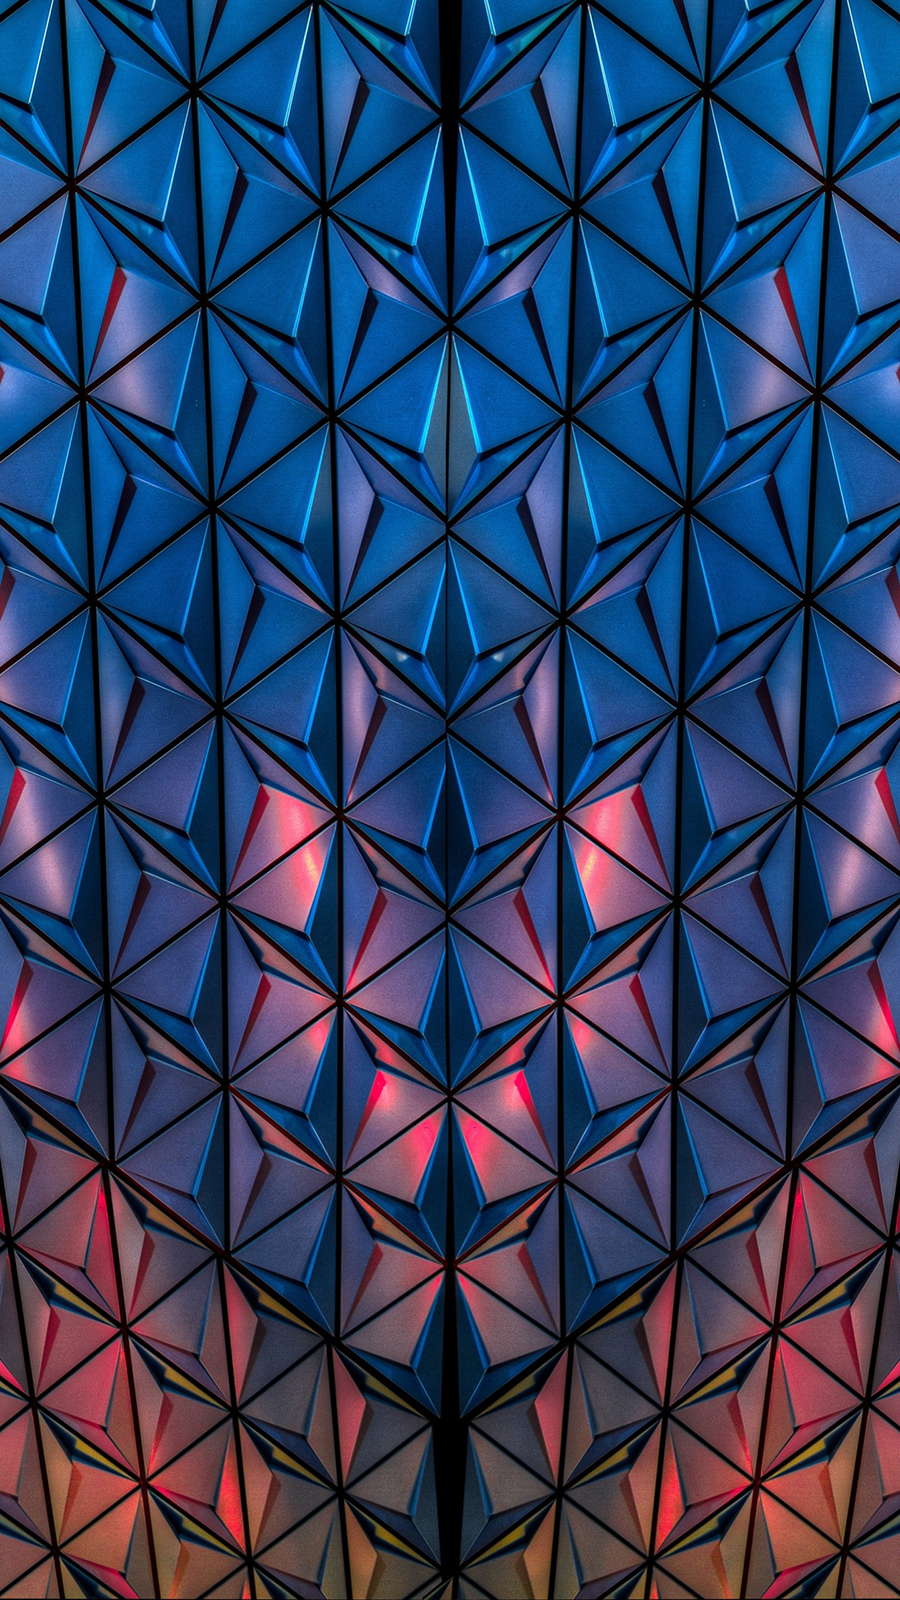 Surface, Shape, Light Wallpapers Download,